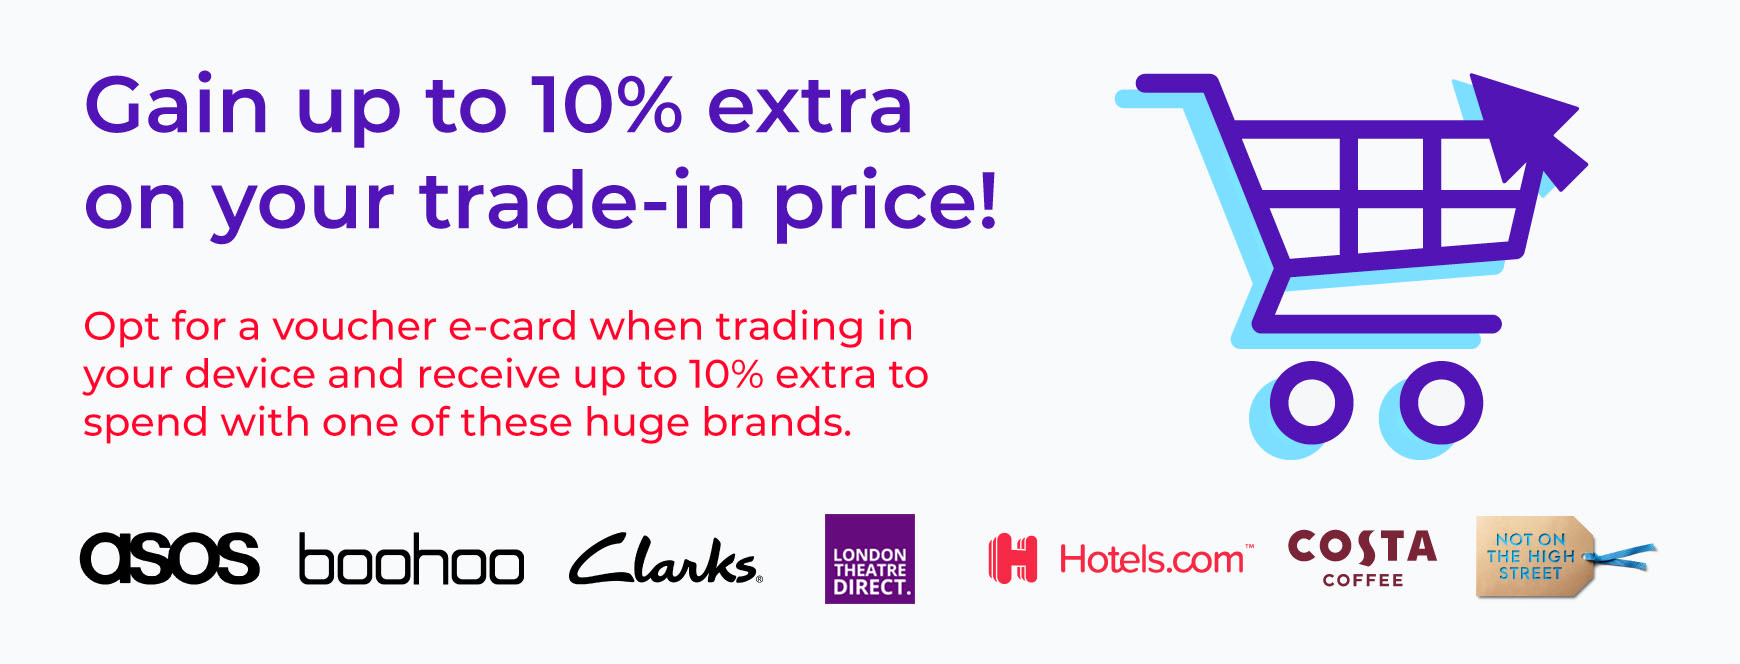 Opt for a voucher e-card and gain up to 10% extra on your trade in-price!